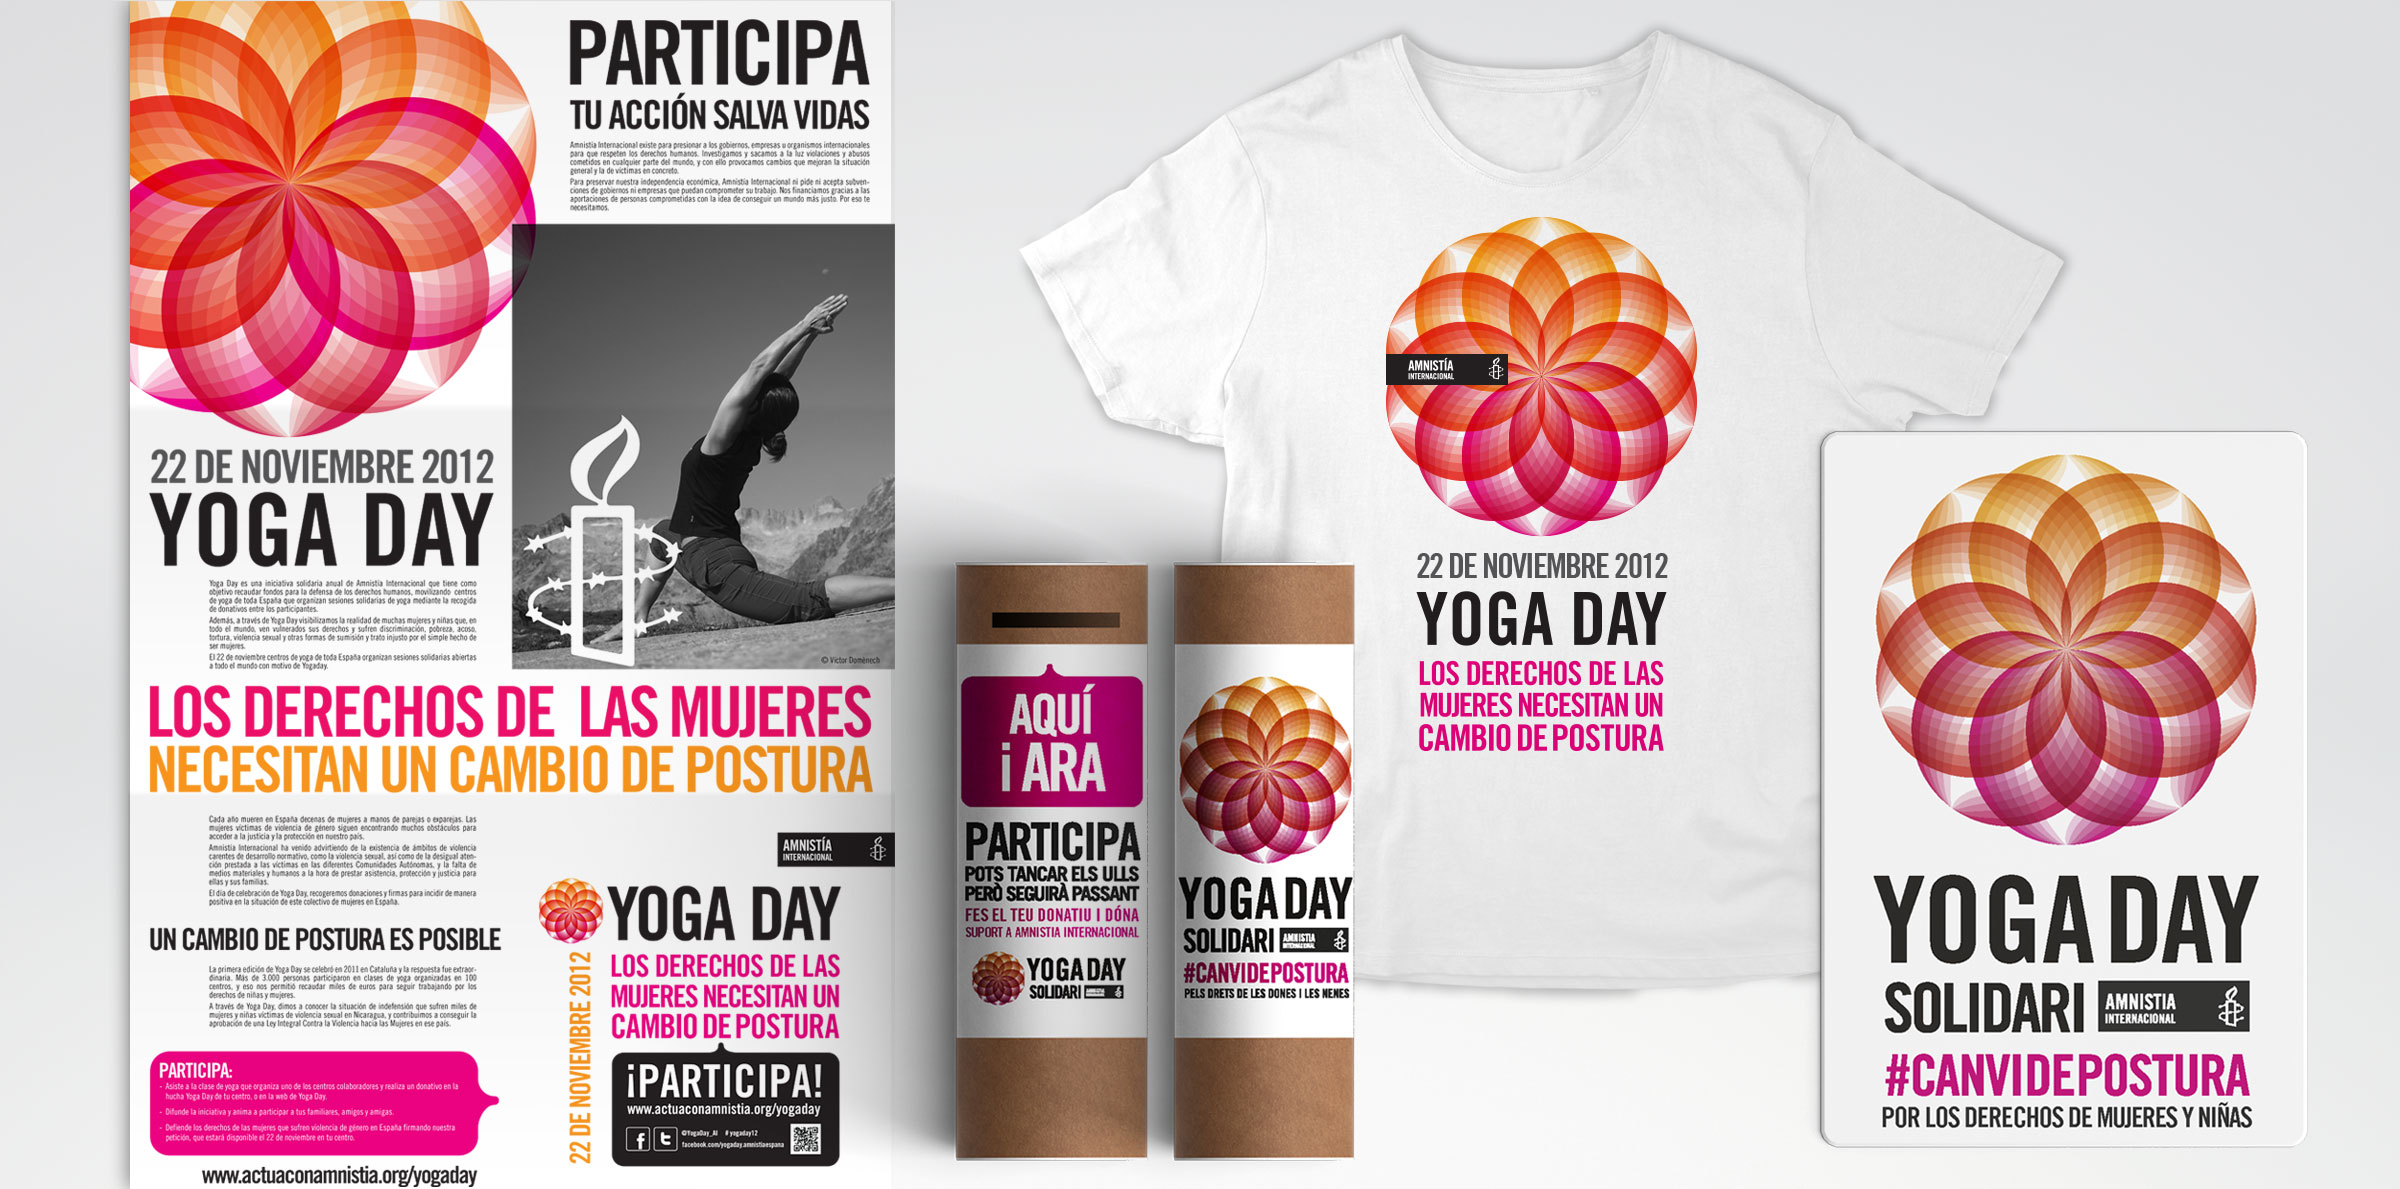 Amnistia Internacional Yoga Day 2 1 - AMNISTIA INTERNACIONAL // YOGA DAY